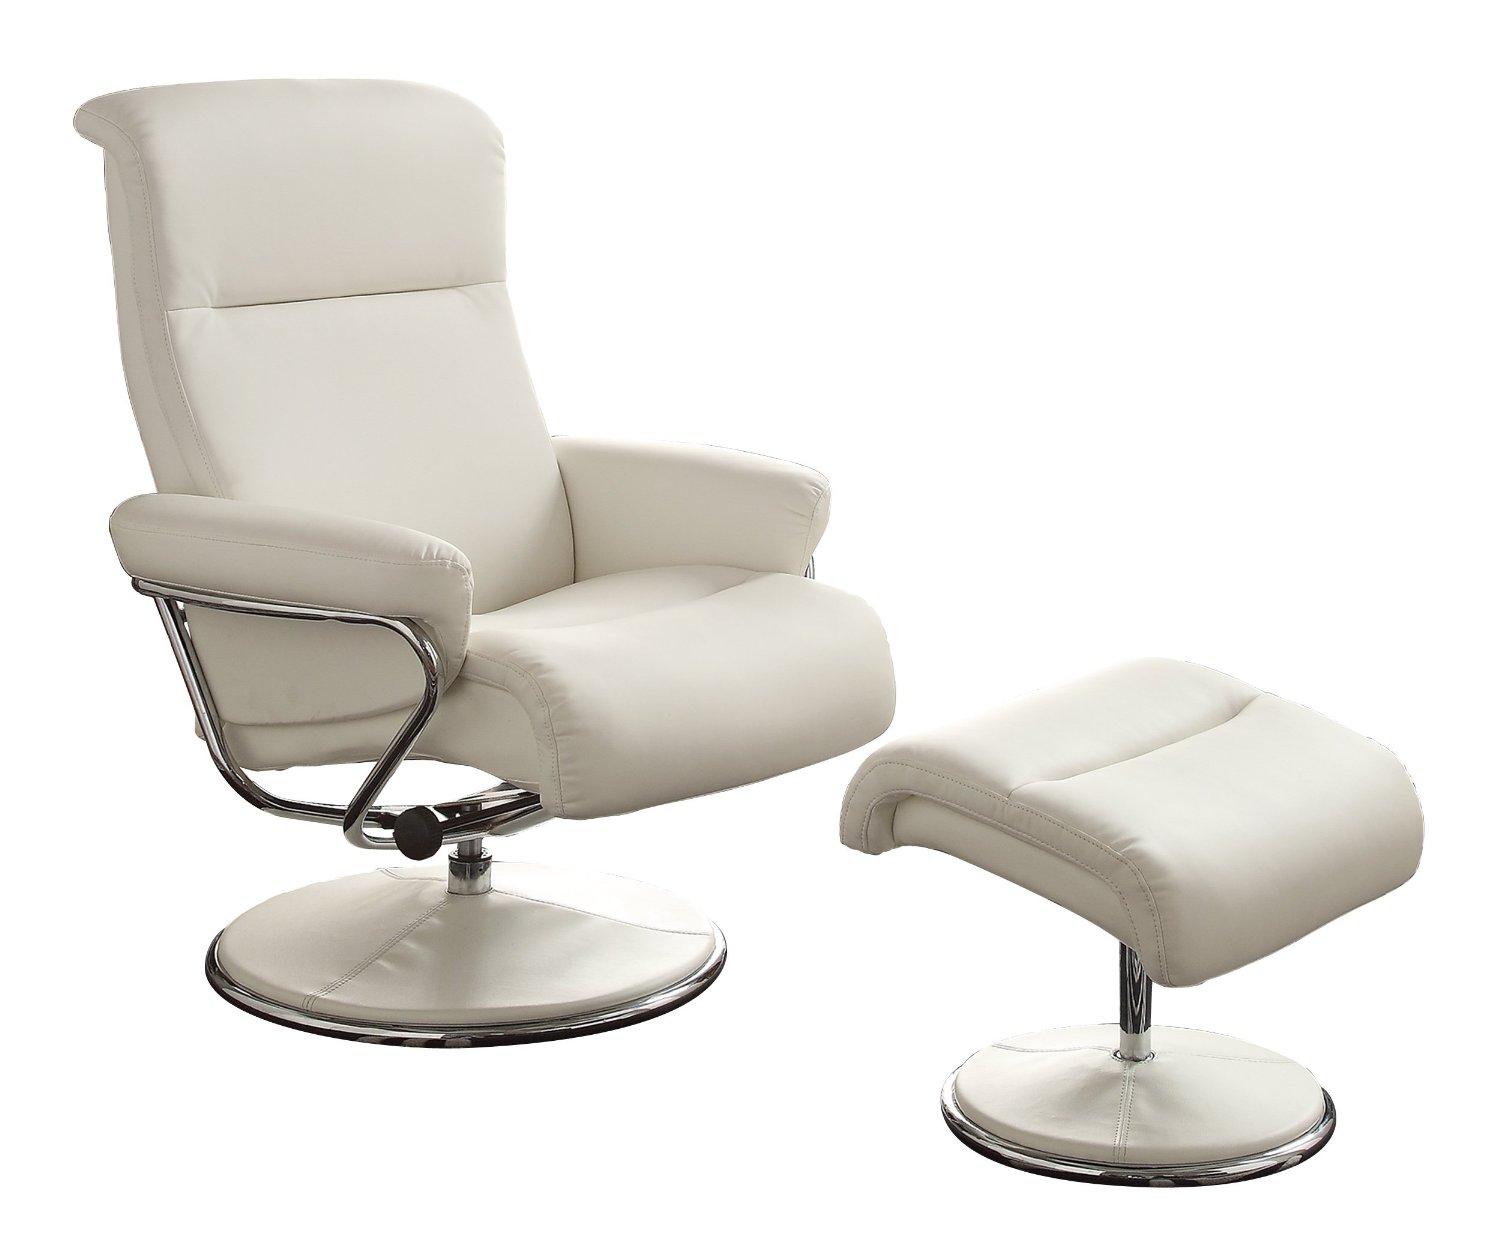 leather swivel recliner chair and ottoman banquet chairs covers homelegance caius reclining w in white